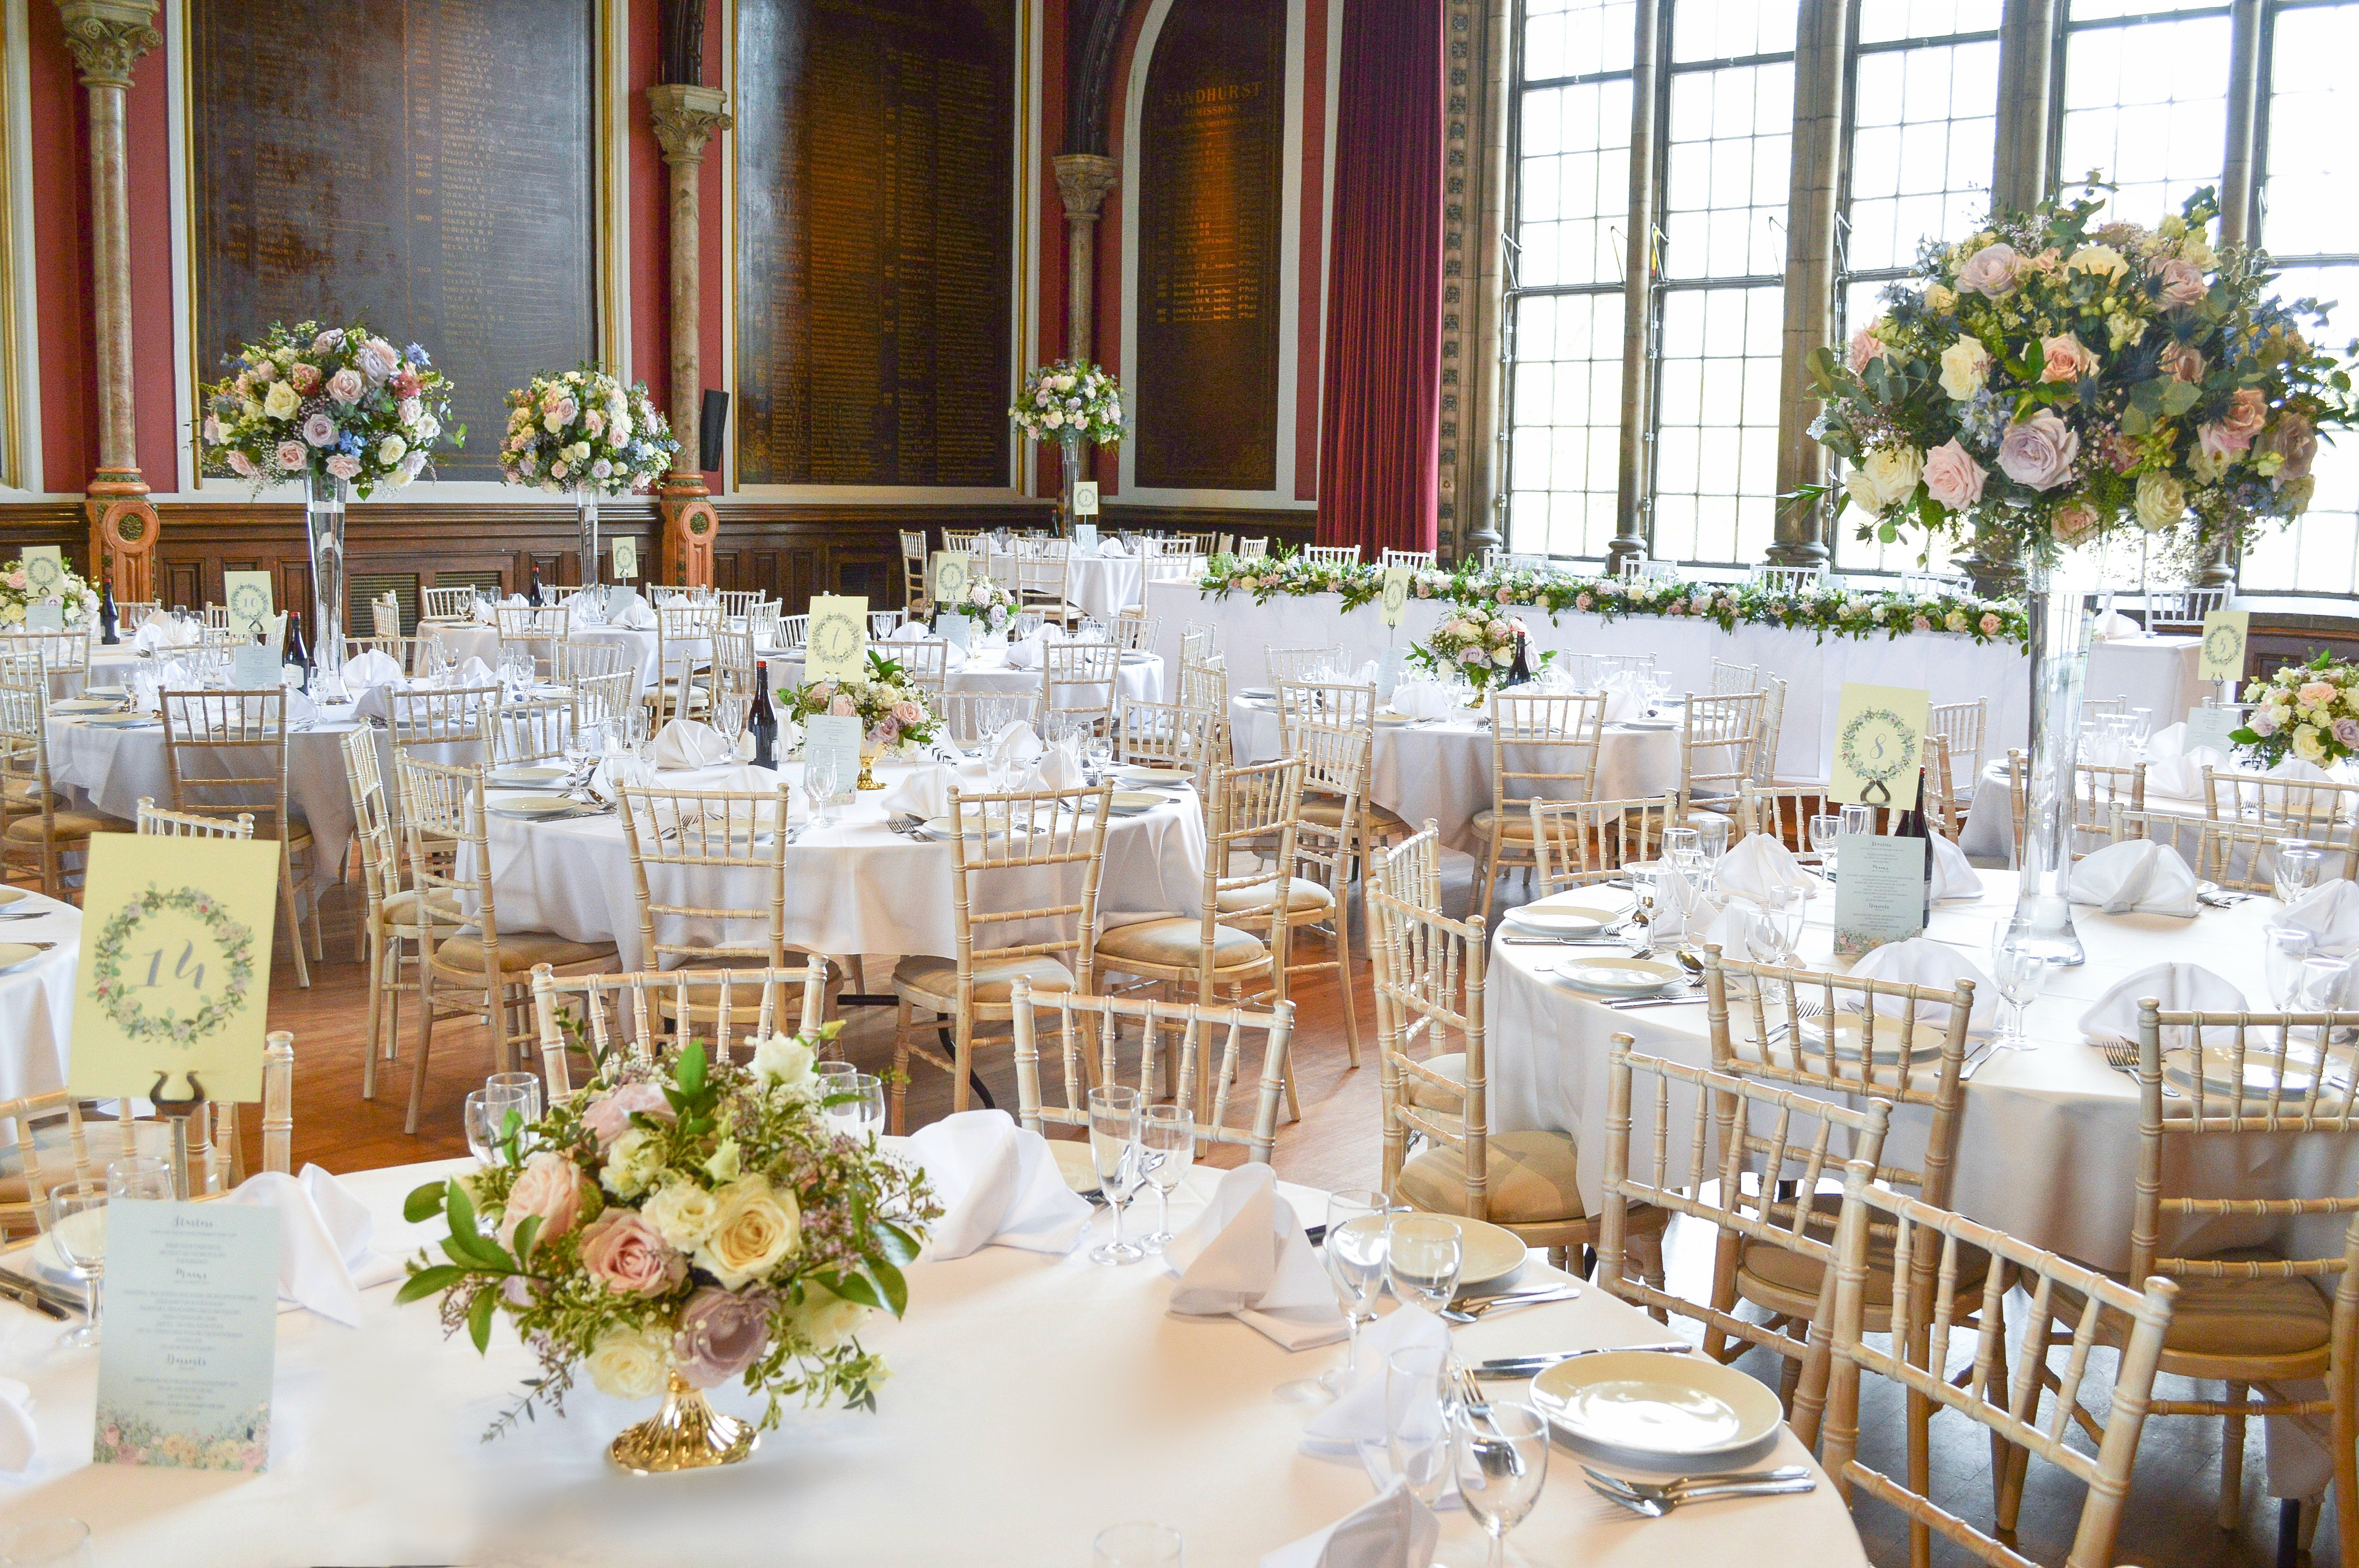 Natural garden rustic style spring pastel pink blue lilac high and low table centrepieces wedding reception Dulwich College Cherie Kelly wedding flowers London